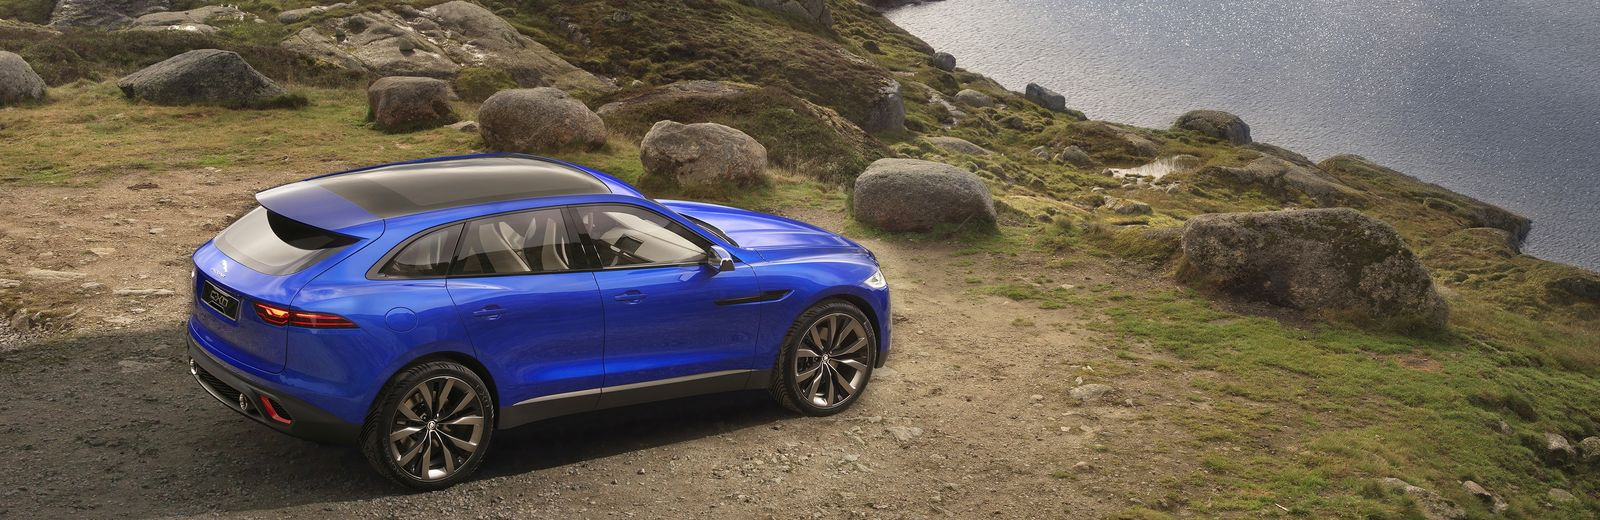 jaguar reveals its new 2016 f pace suv carwow. Black Bedroom Furniture Sets. Home Design Ideas